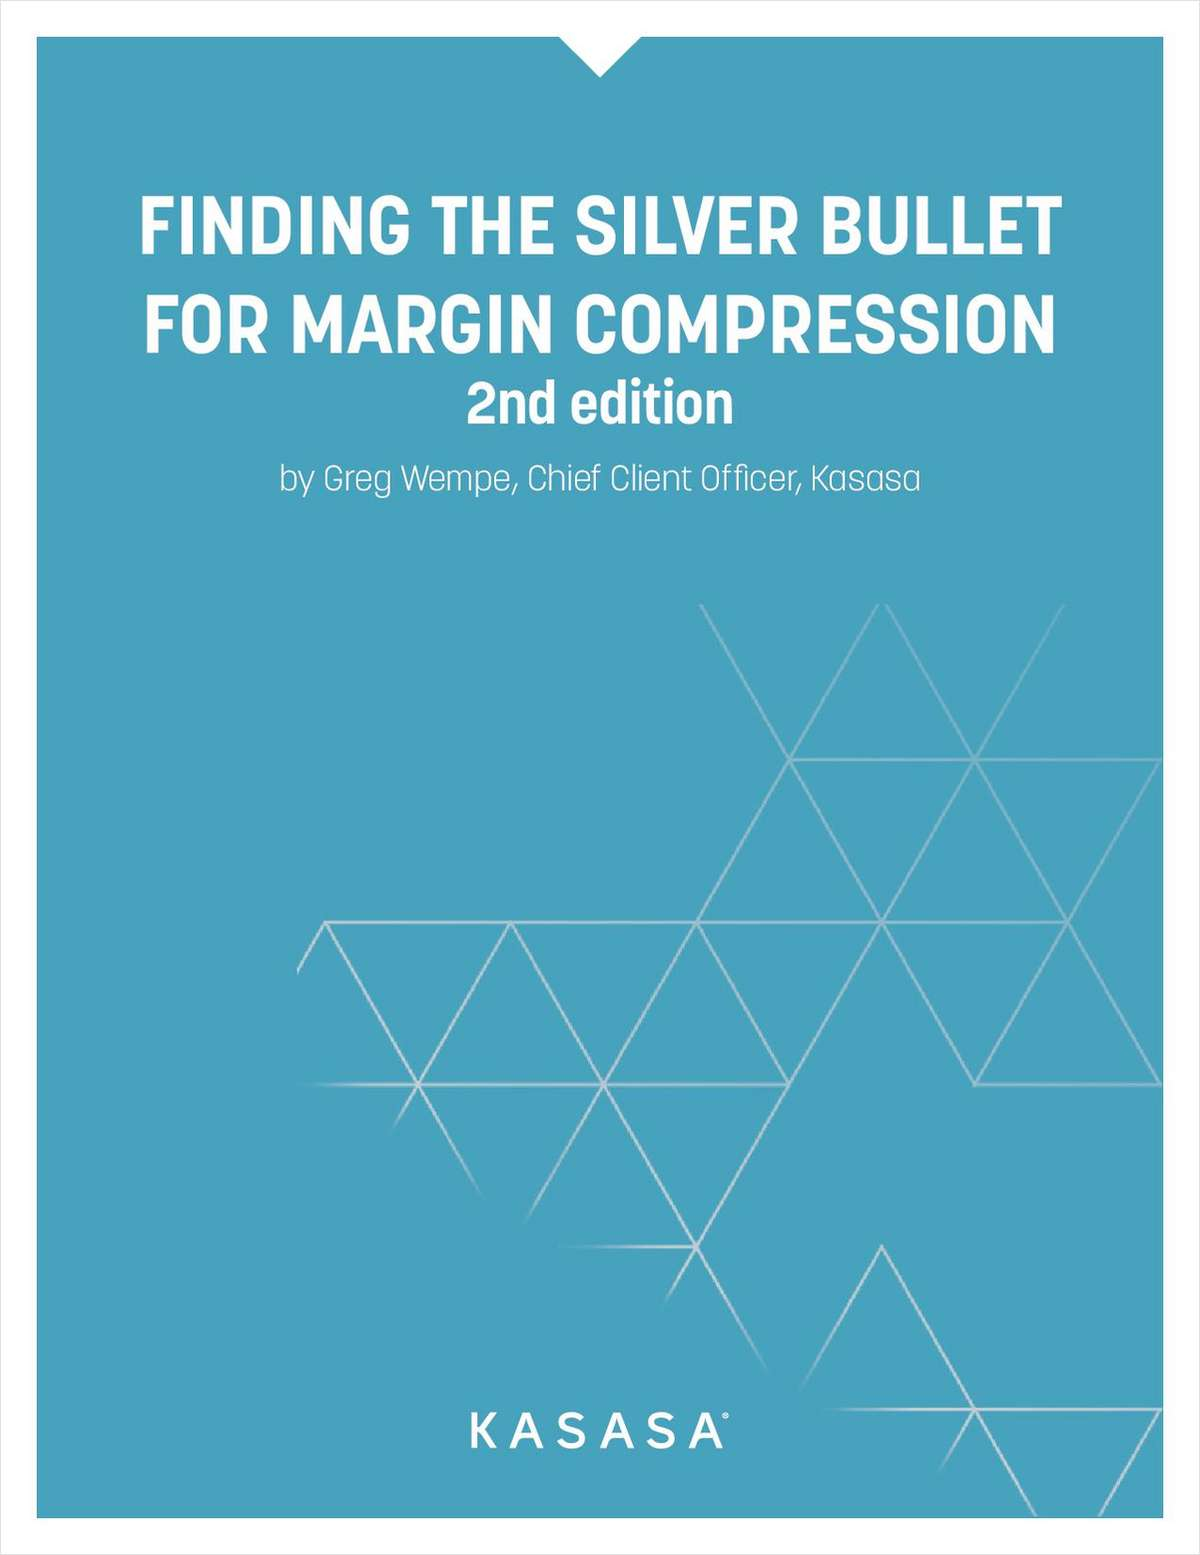 Finding the Silver Bullet for Margin Compression